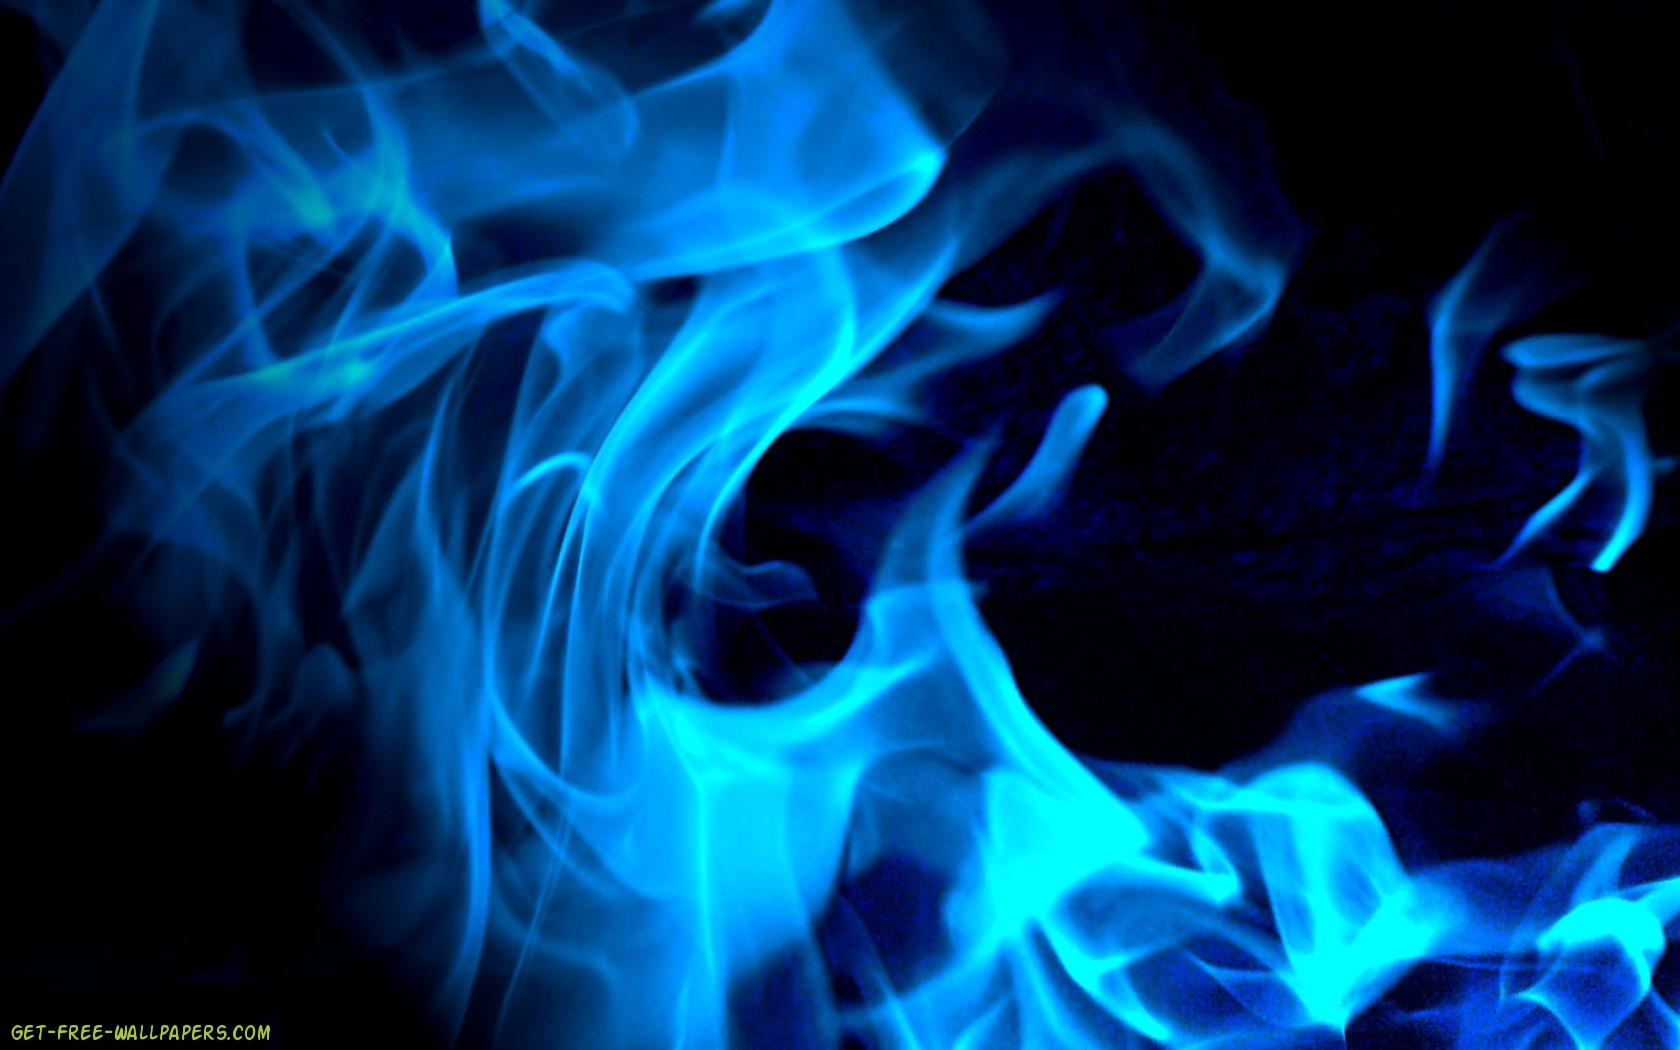 cool blue fire hd desktop wallpaper, instagram photo, background